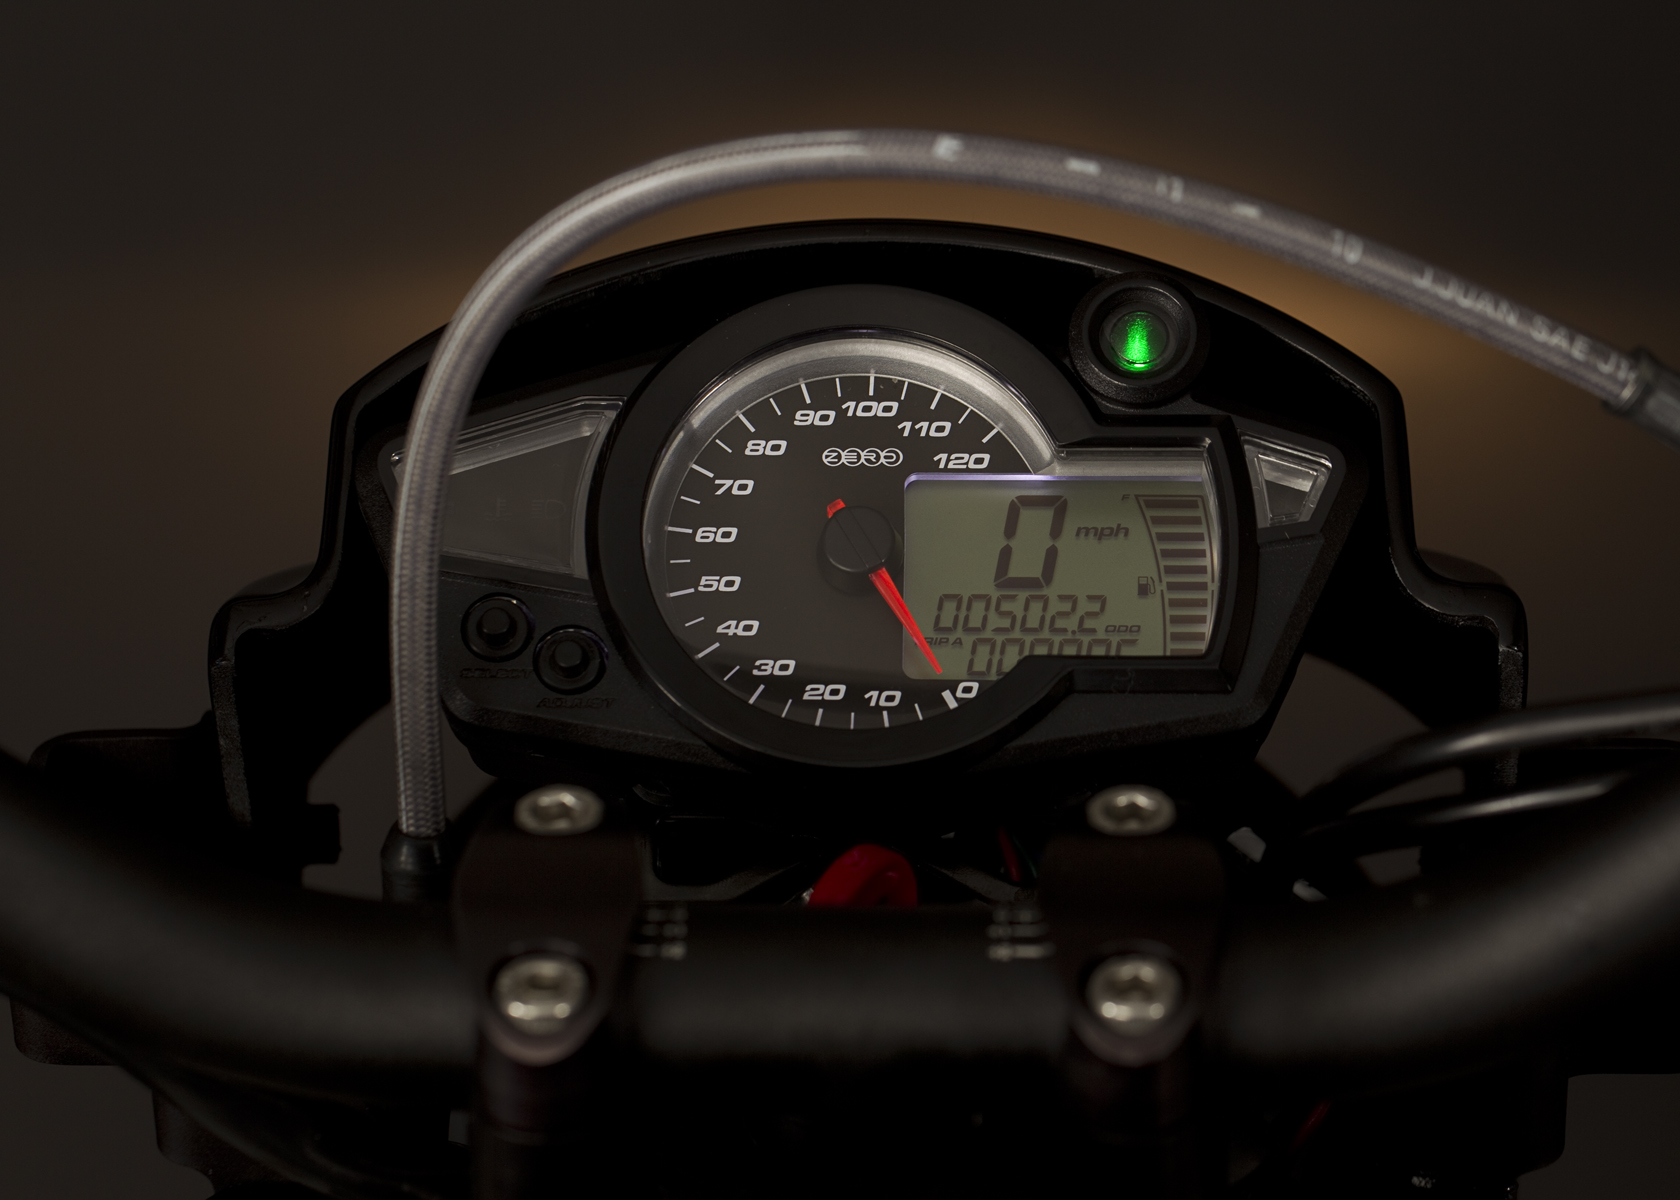 2011 Zero DS Electric Motorcycle: Gauge